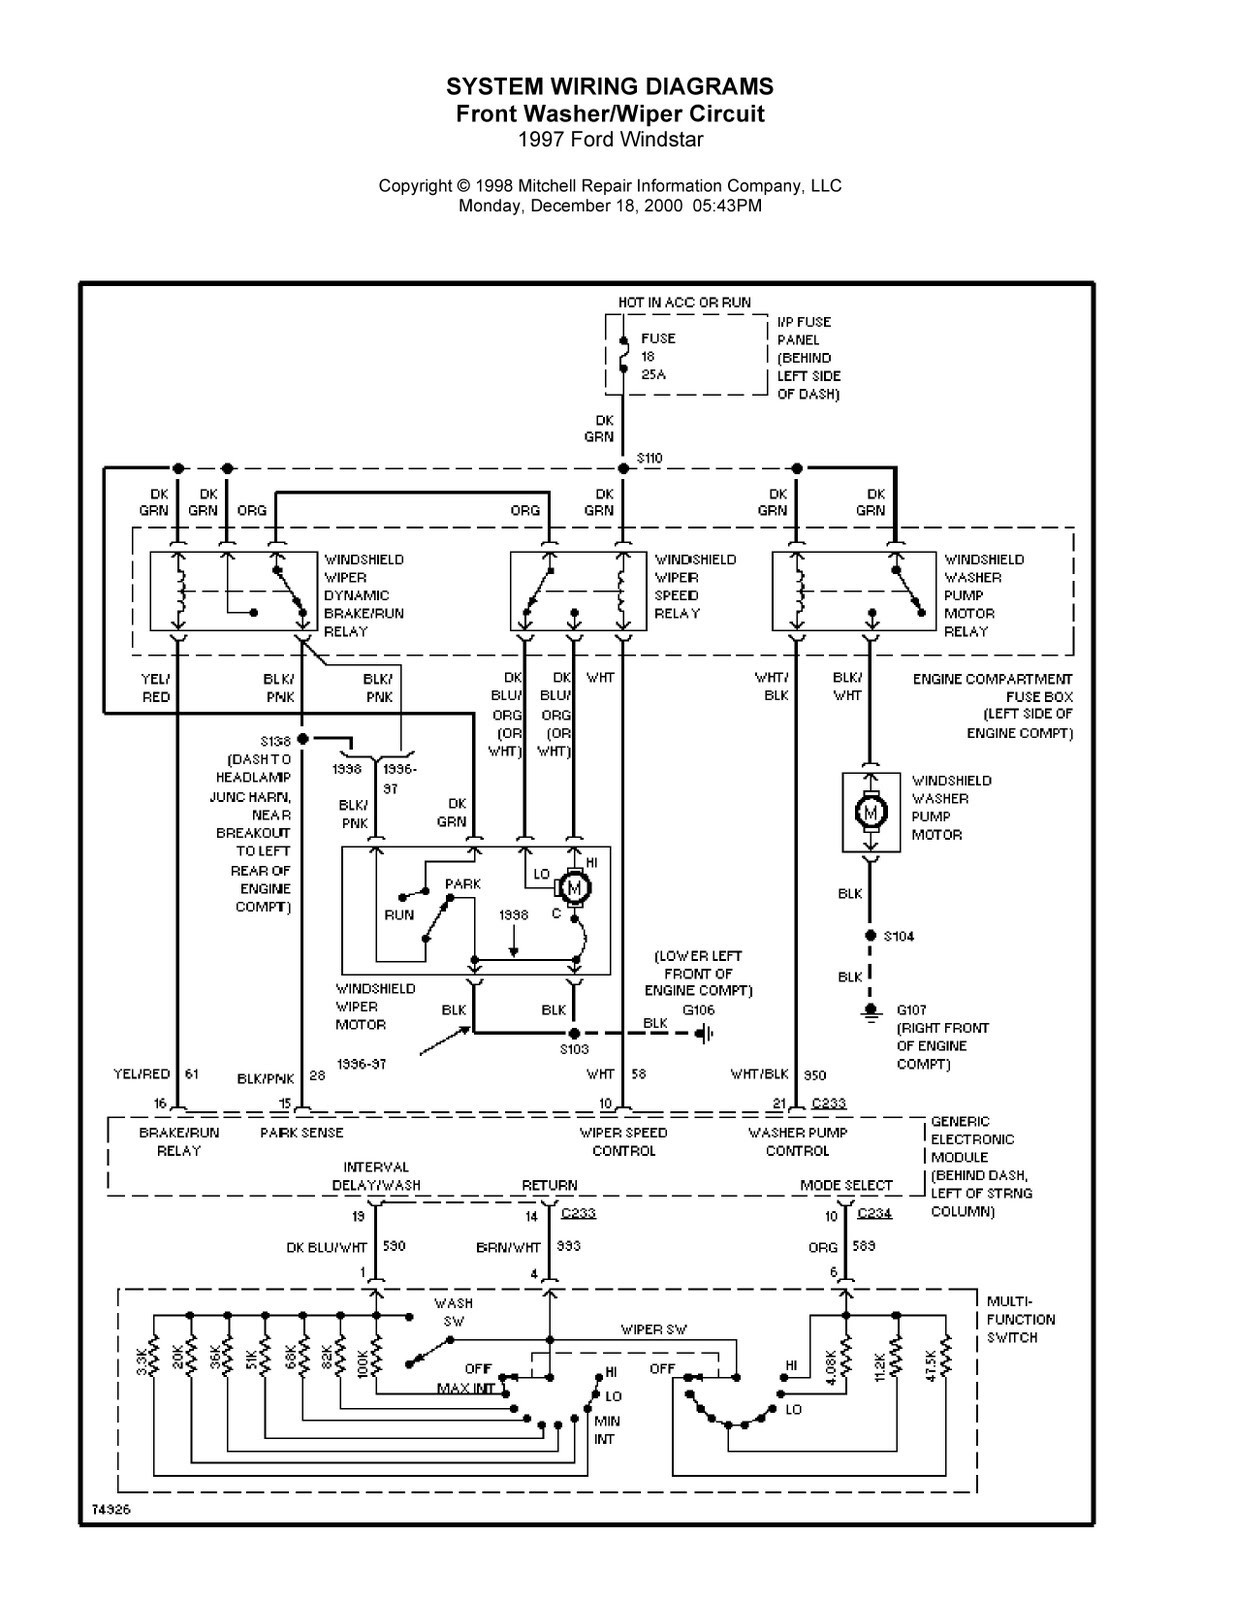 98 ford windstar fuel pump wiring diagram automotive wiring diagram u2022 rh nfluencer co